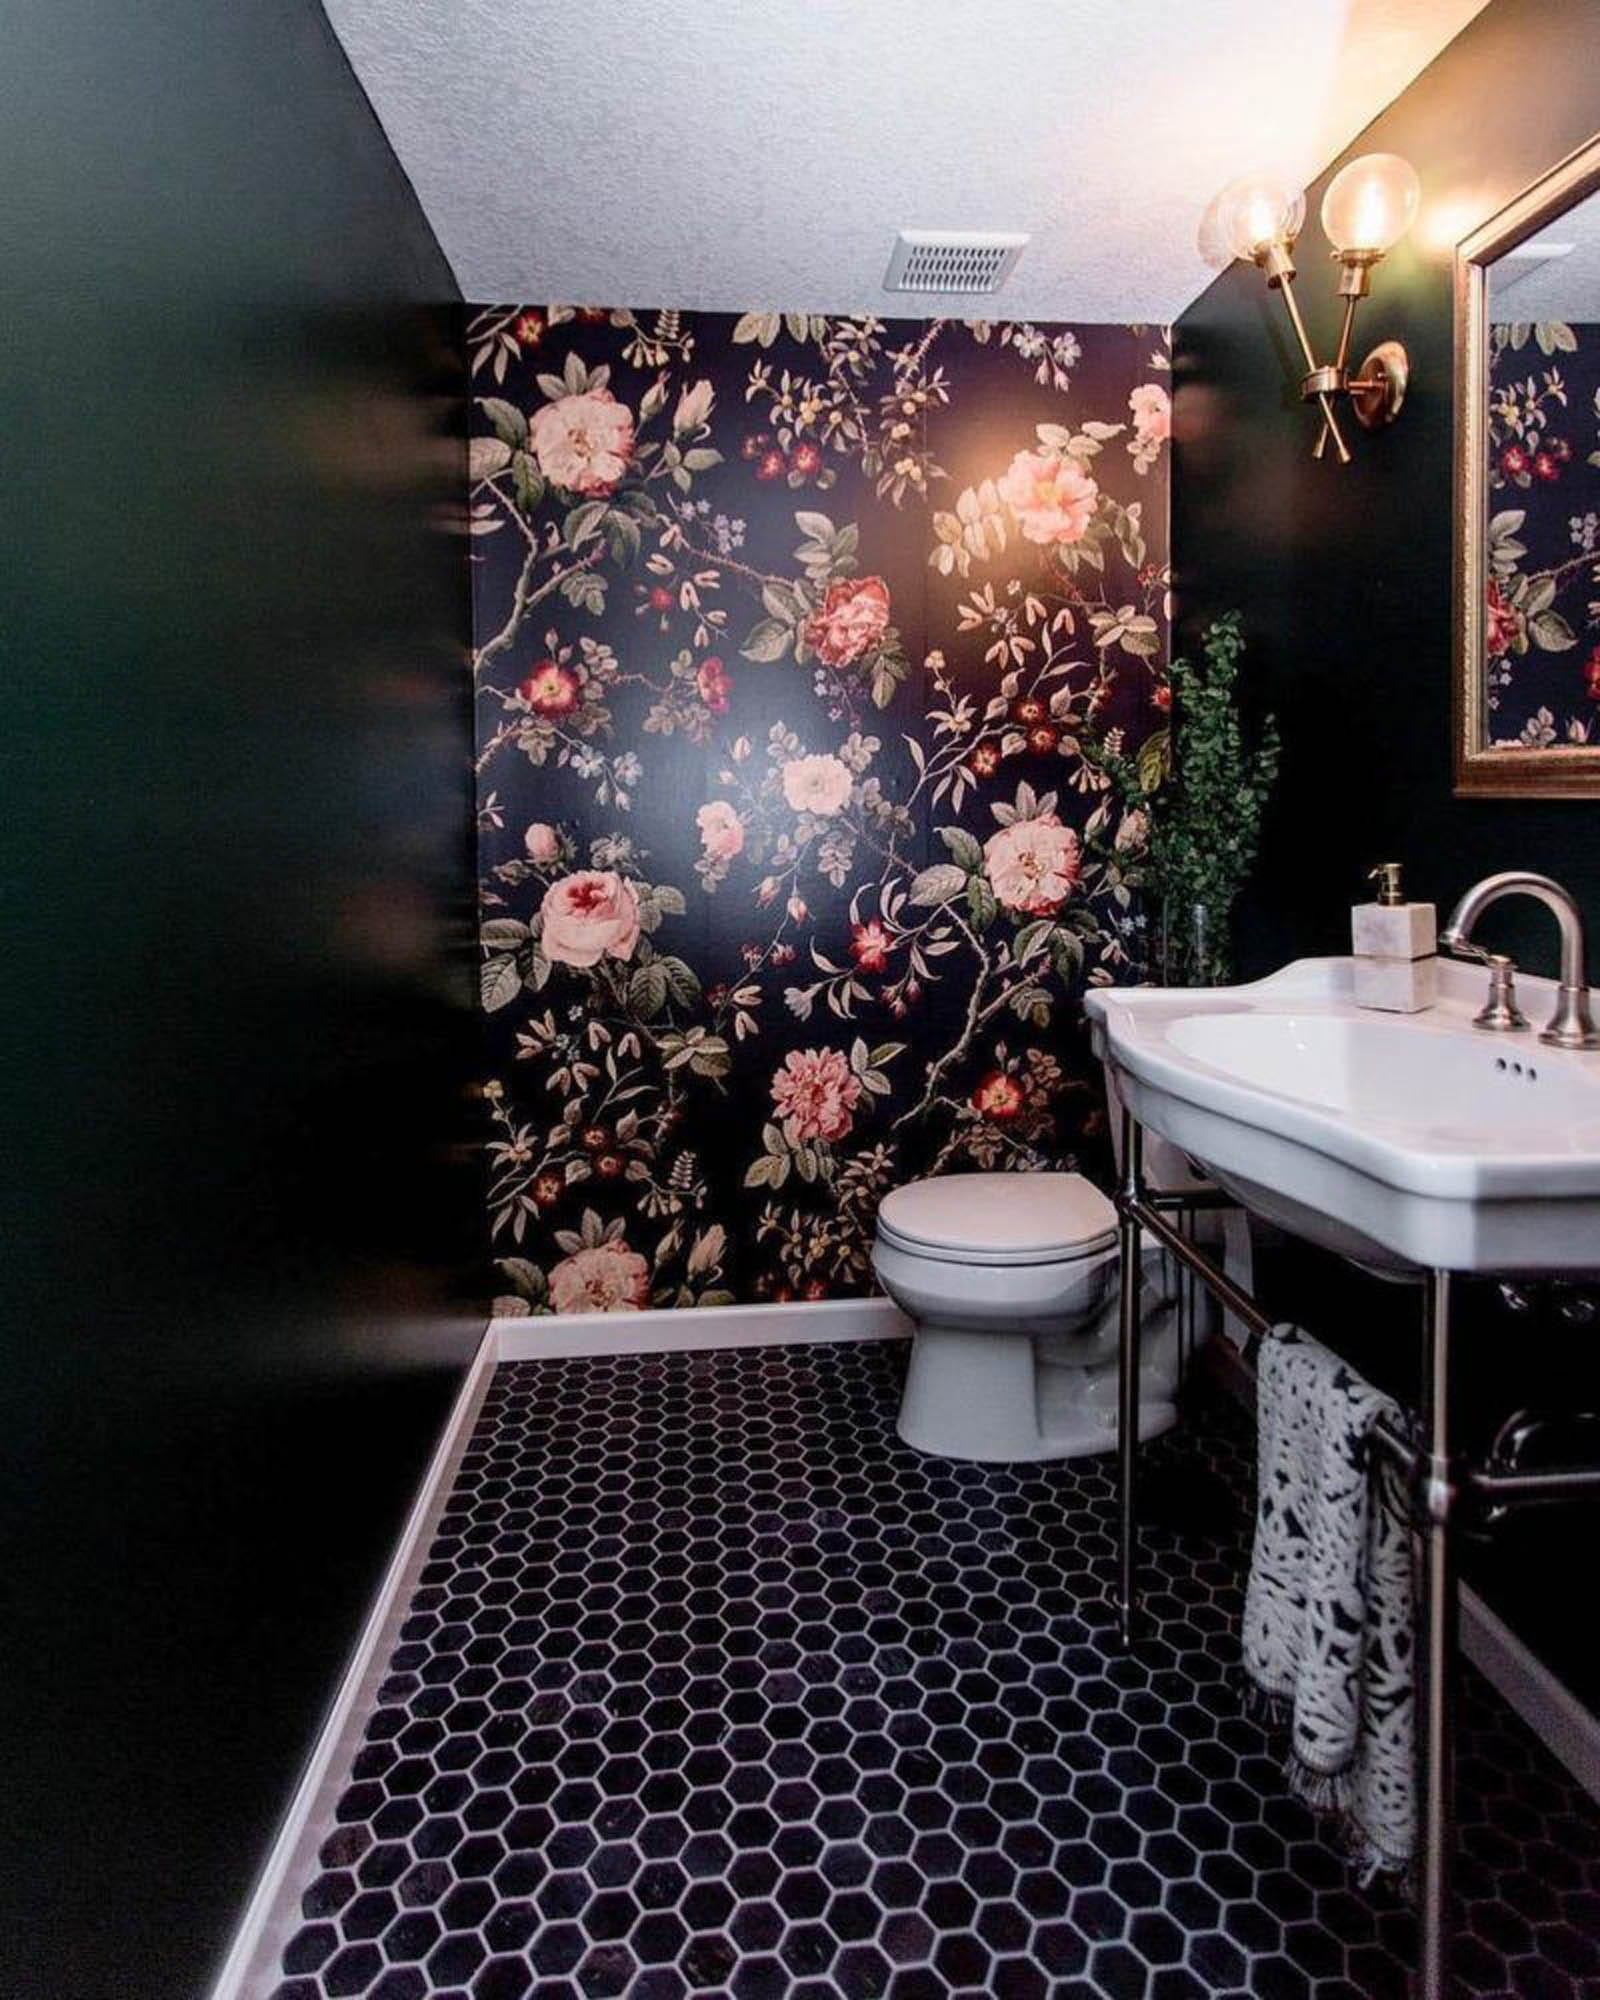 Bathroom with black walls and floors